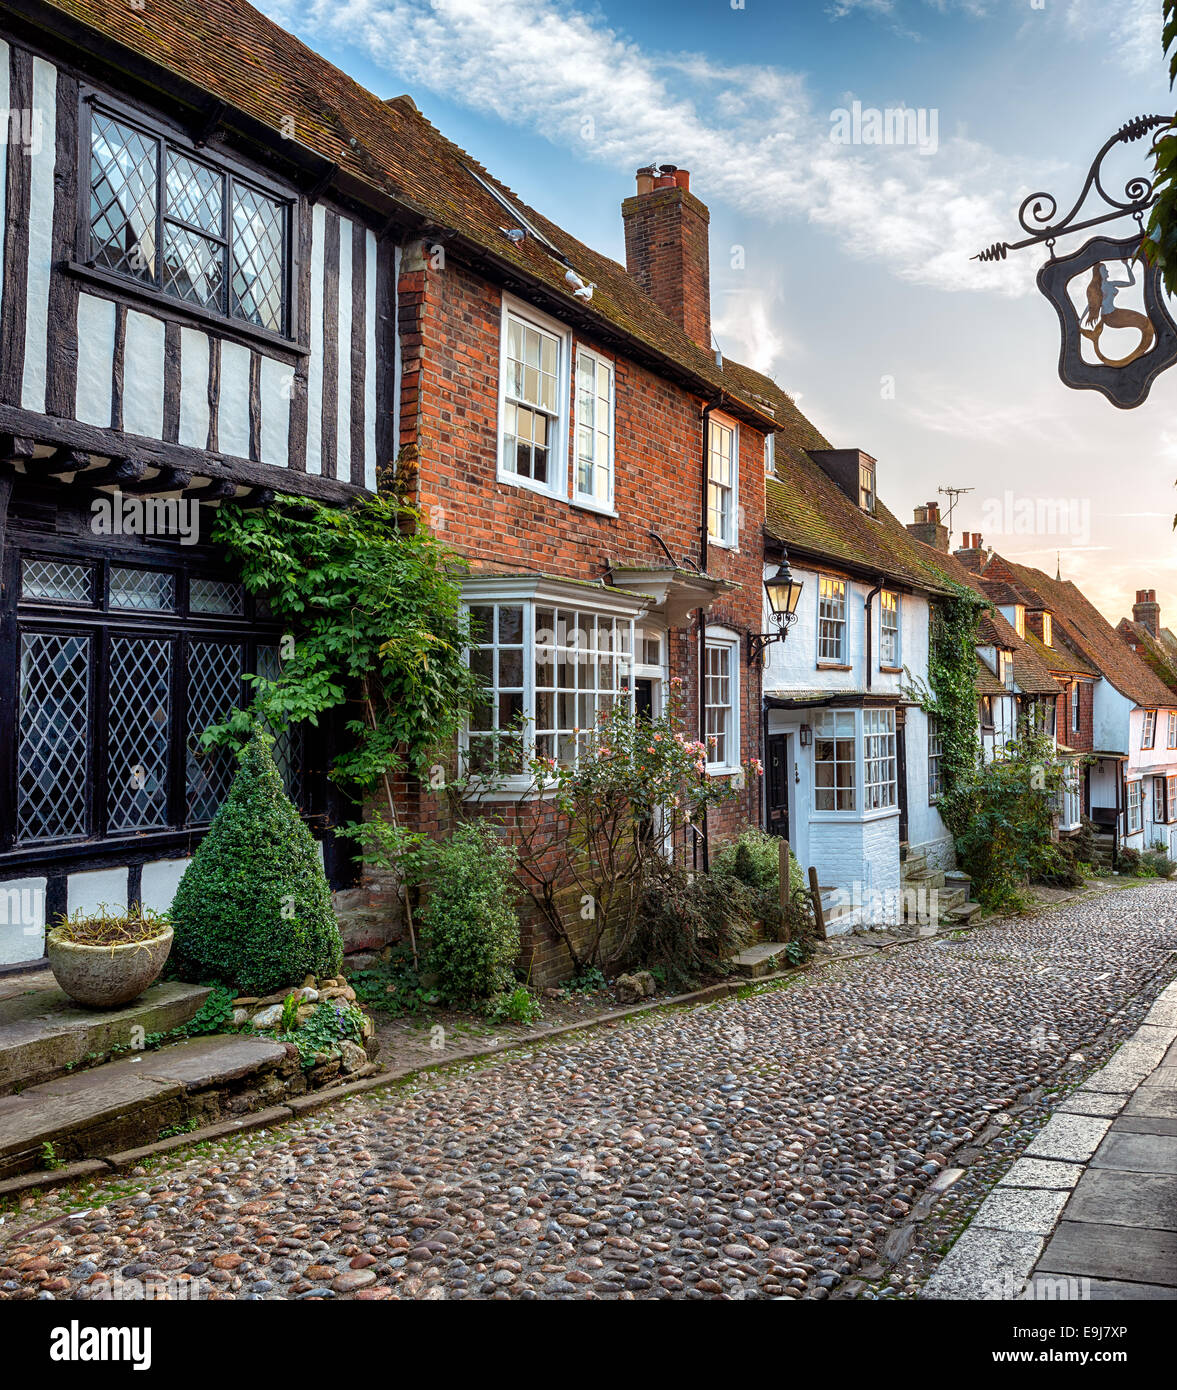 A row of beautiful old houses on a cobbled street in Rye, East sussex - Stock Image